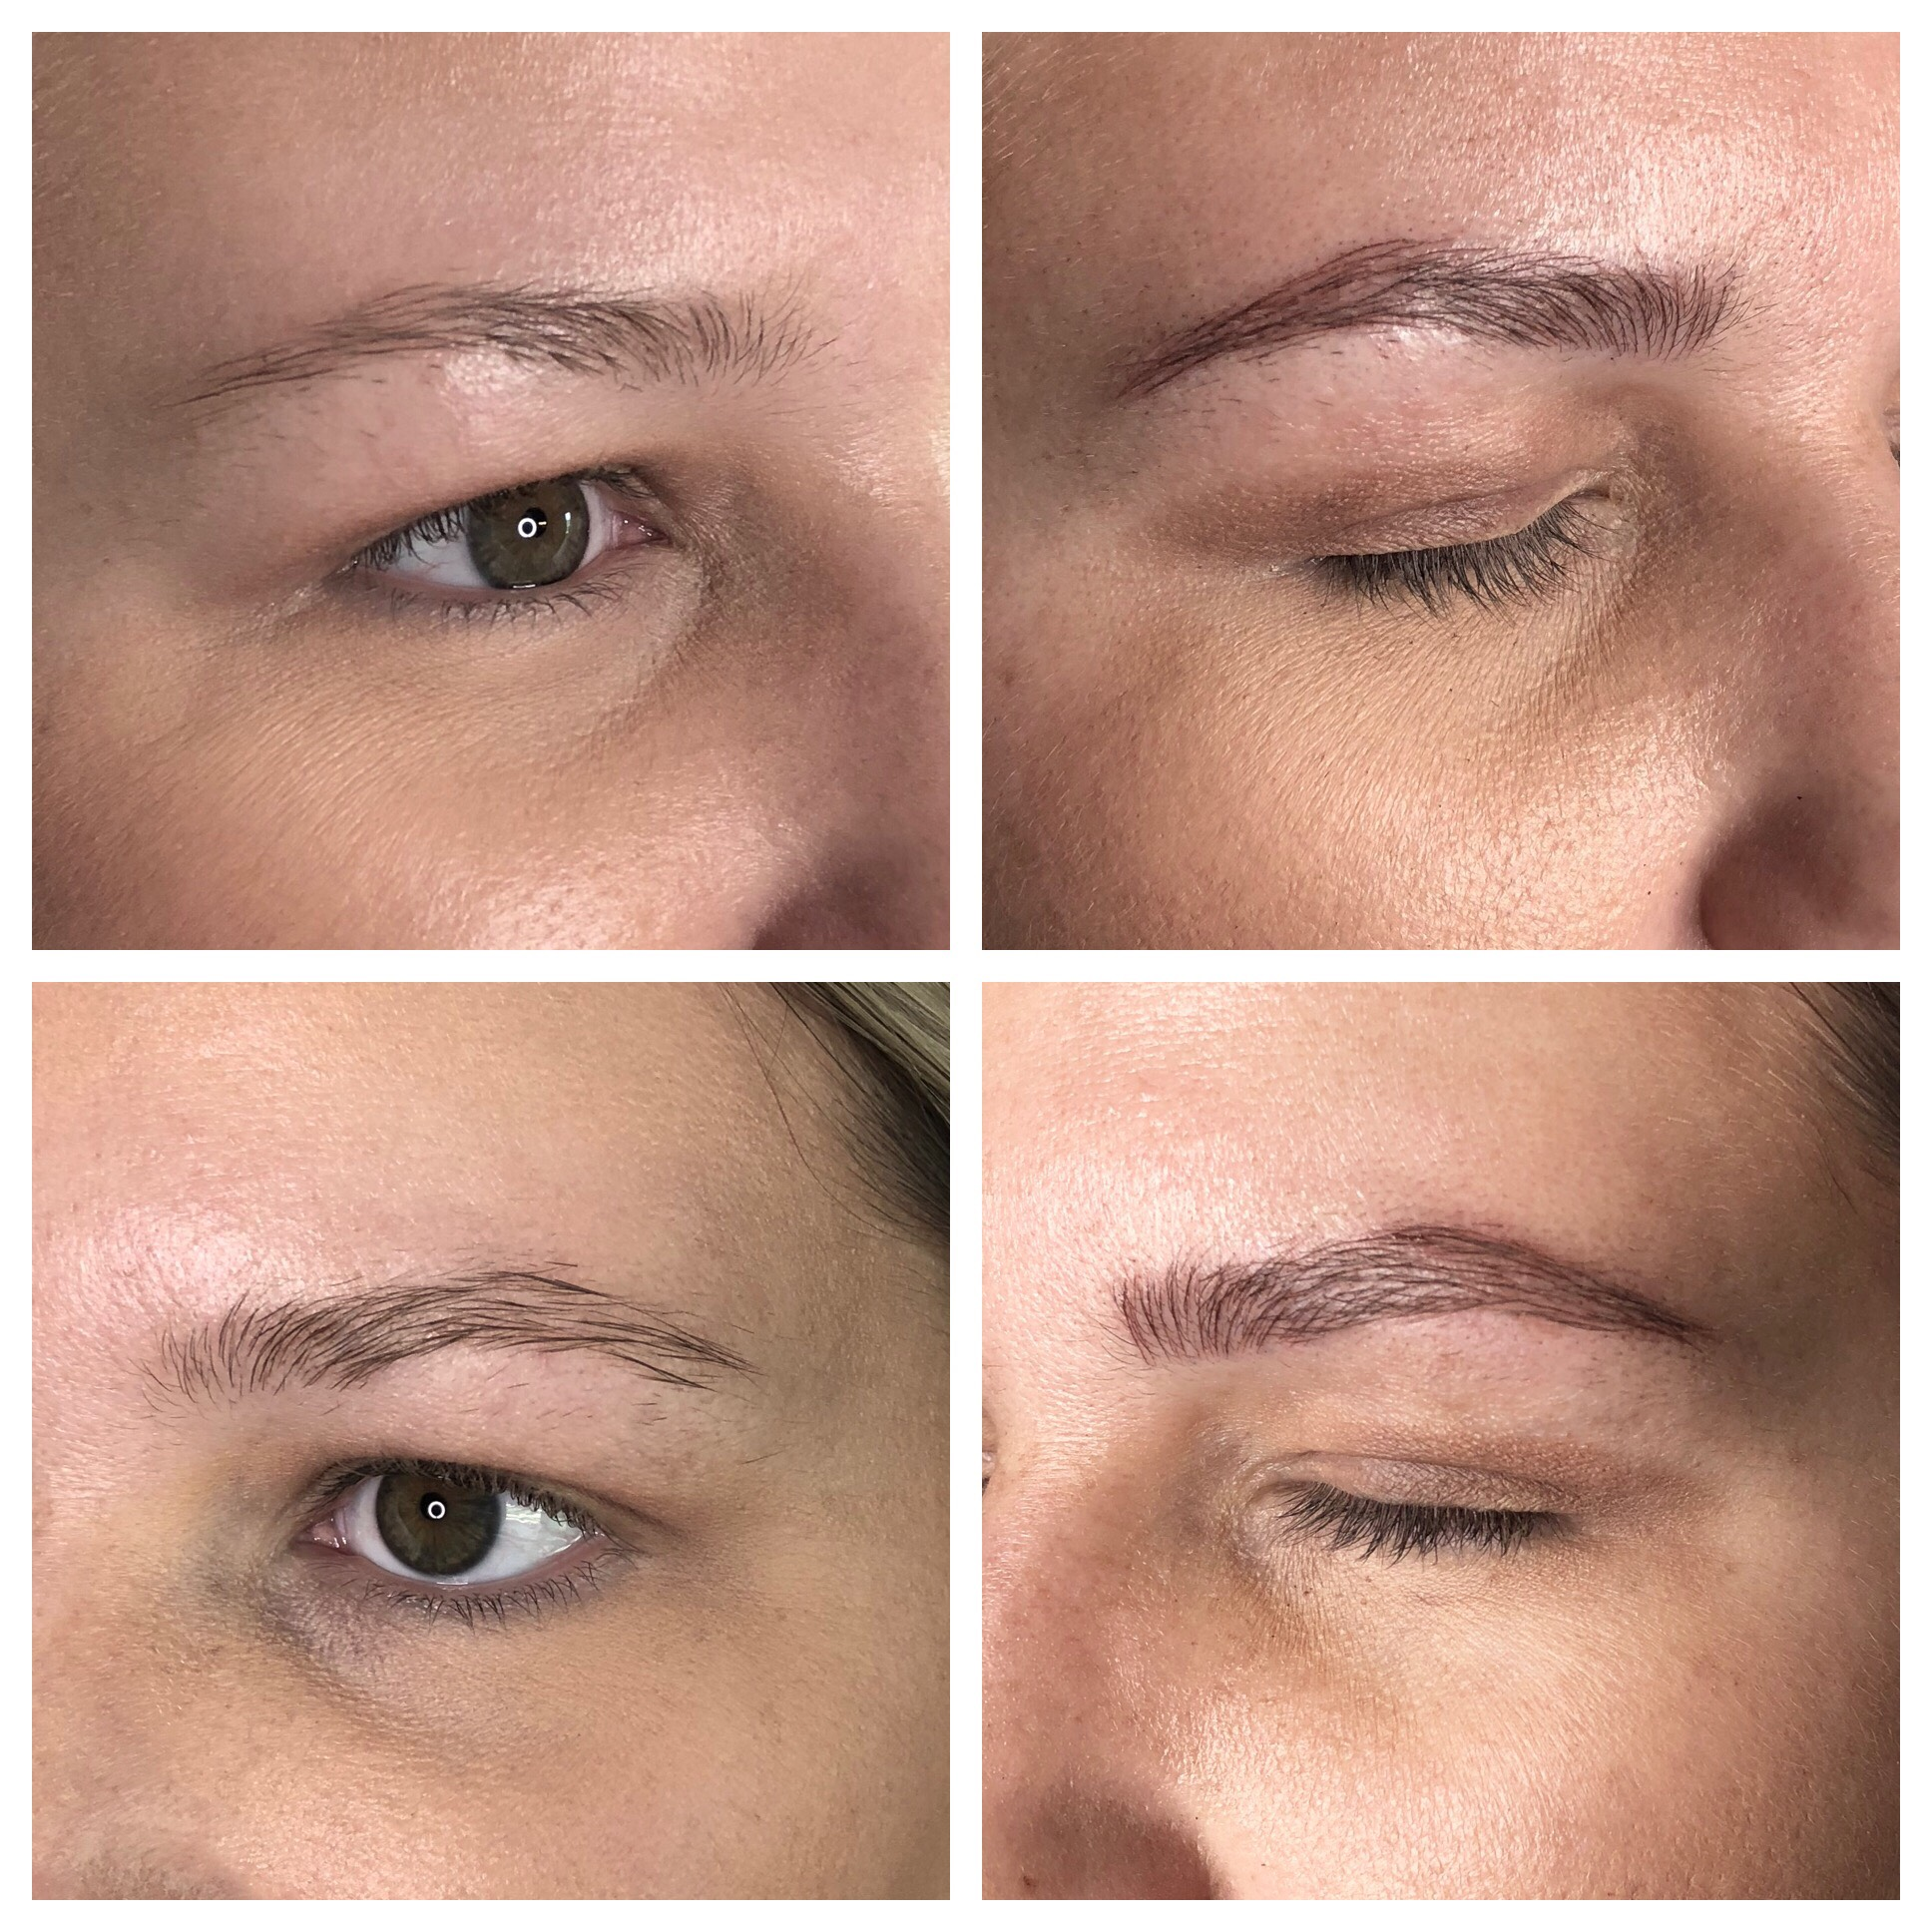 My own before and after microblading service by Trista Noe.